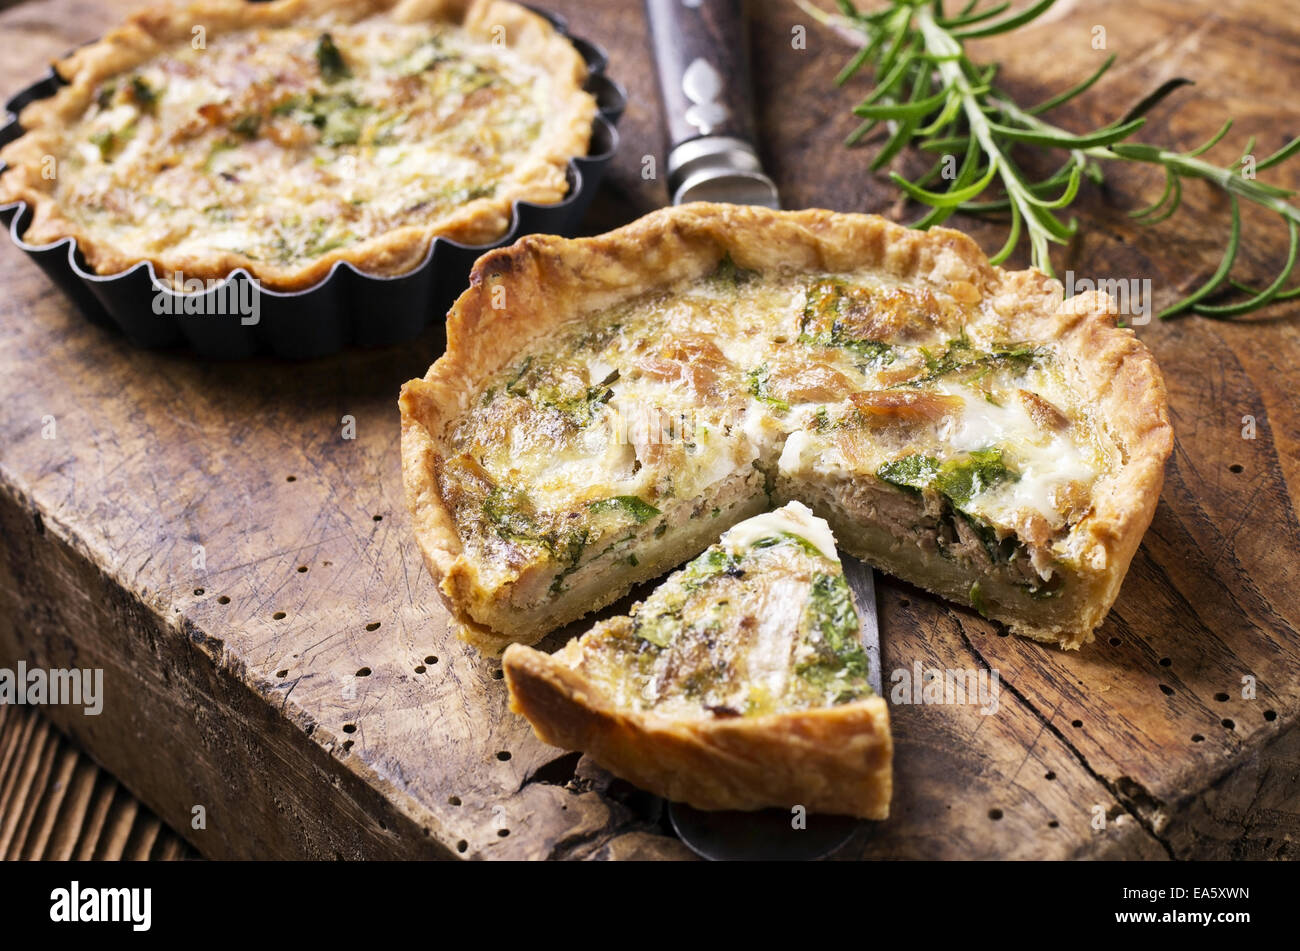 Quiche à la pêche au thon Photo Stock